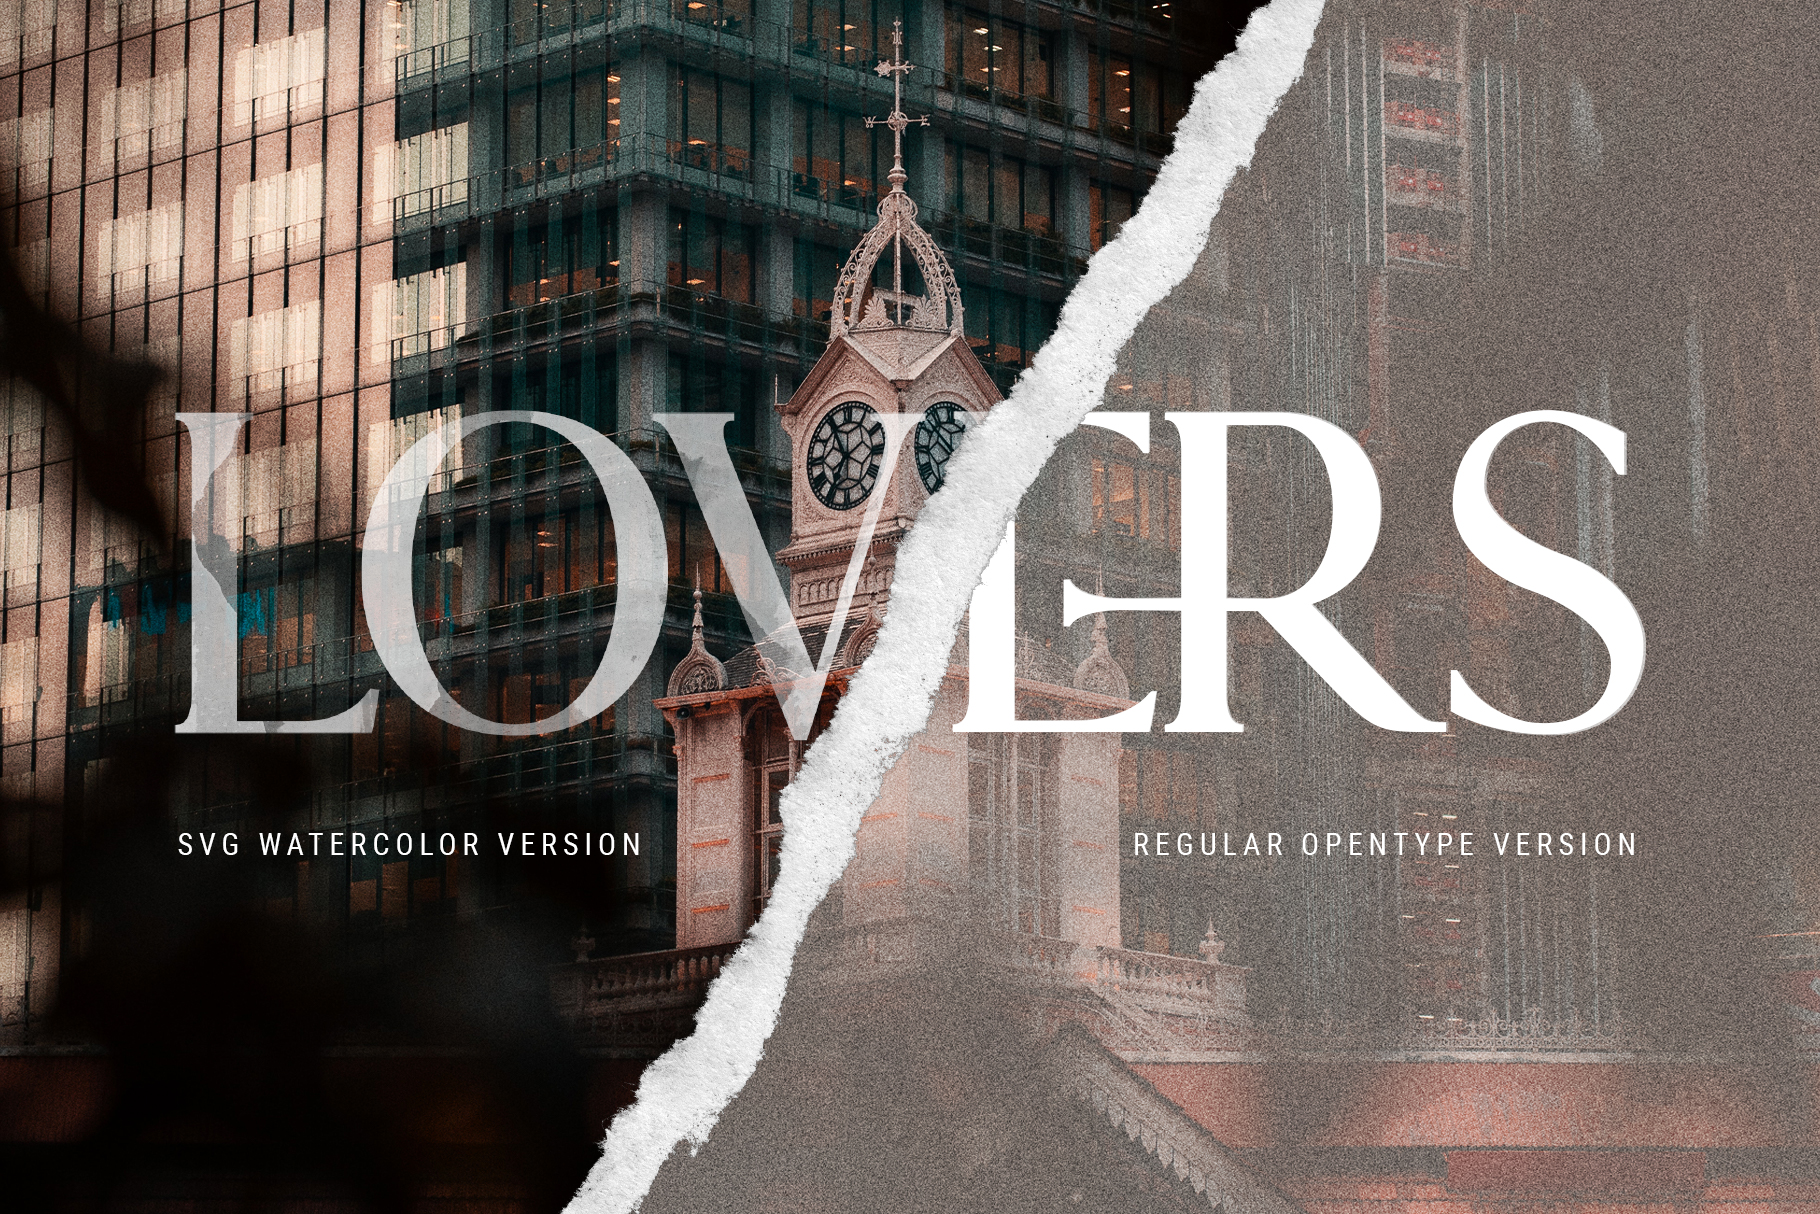 Lovers SVG Serif Watercolor Modern Font & Extras example image 5